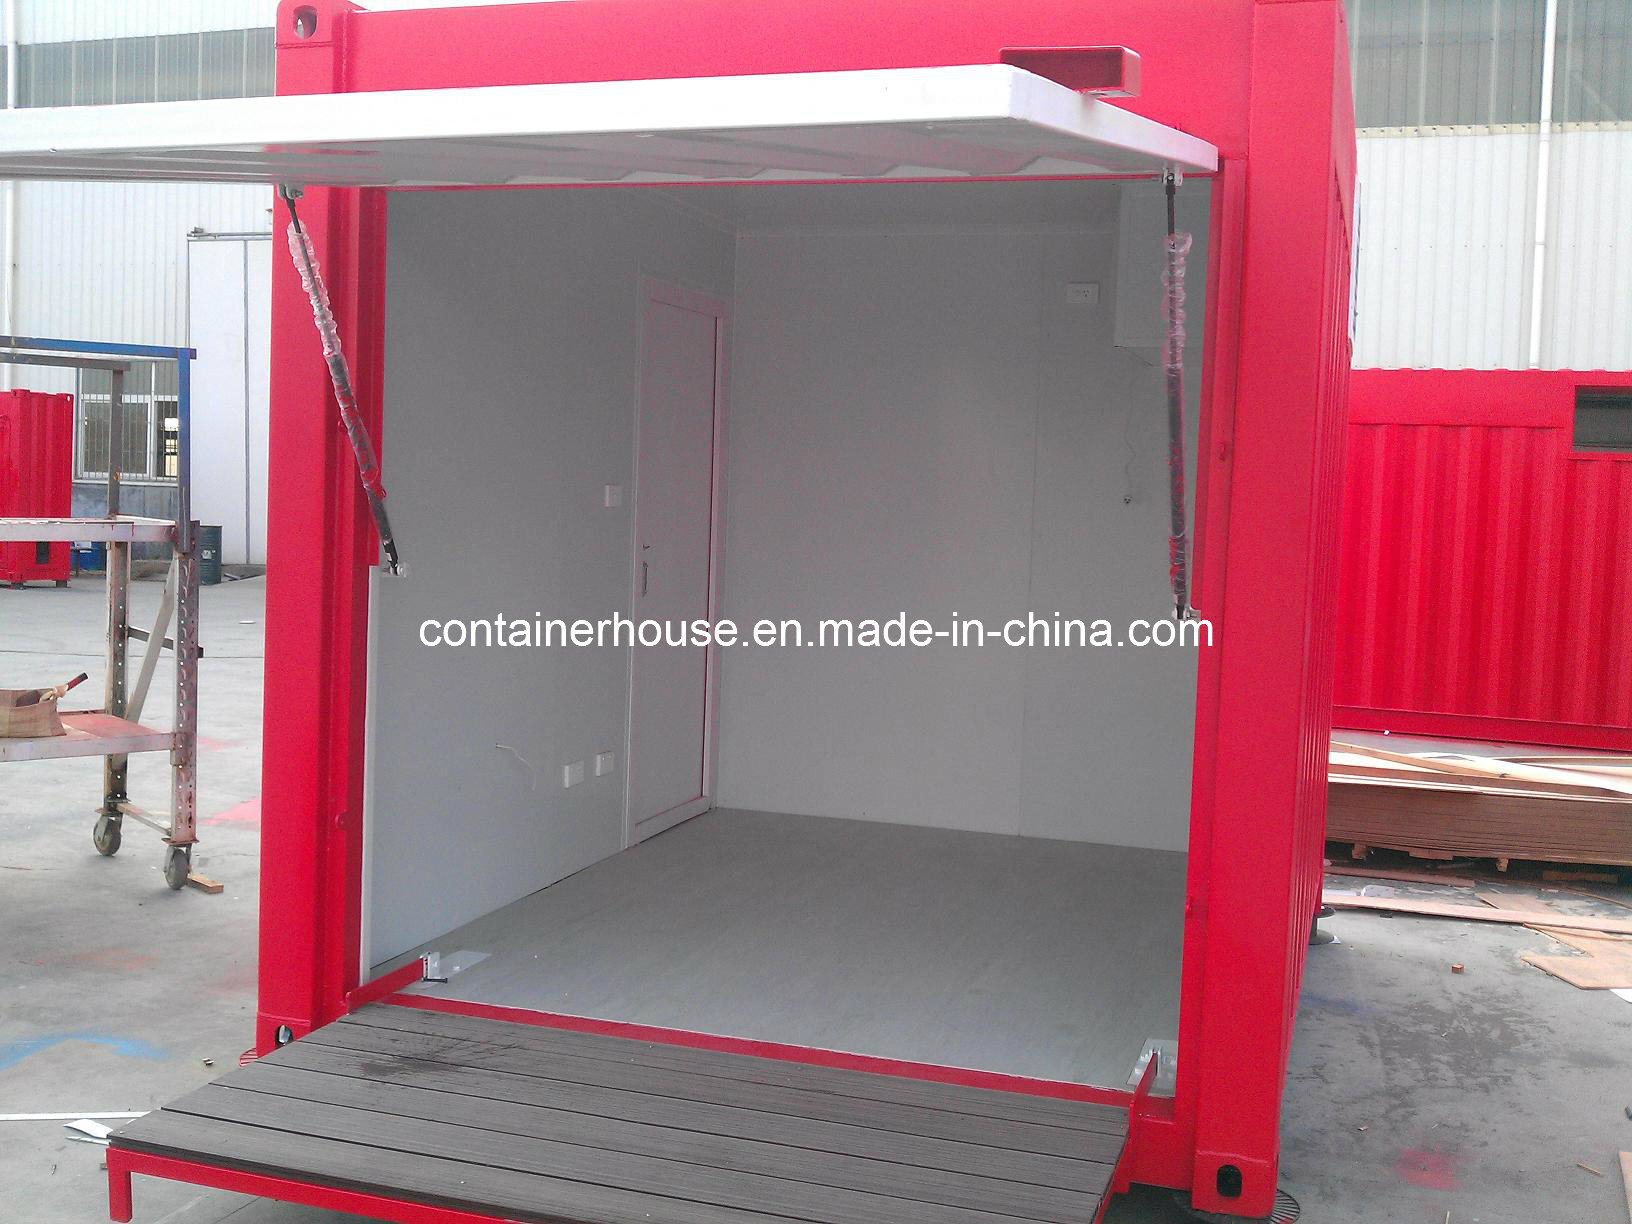 china 10 ft folding container shop photos pictures. Black Bedroom Furniture Sets. Home Design Ideas